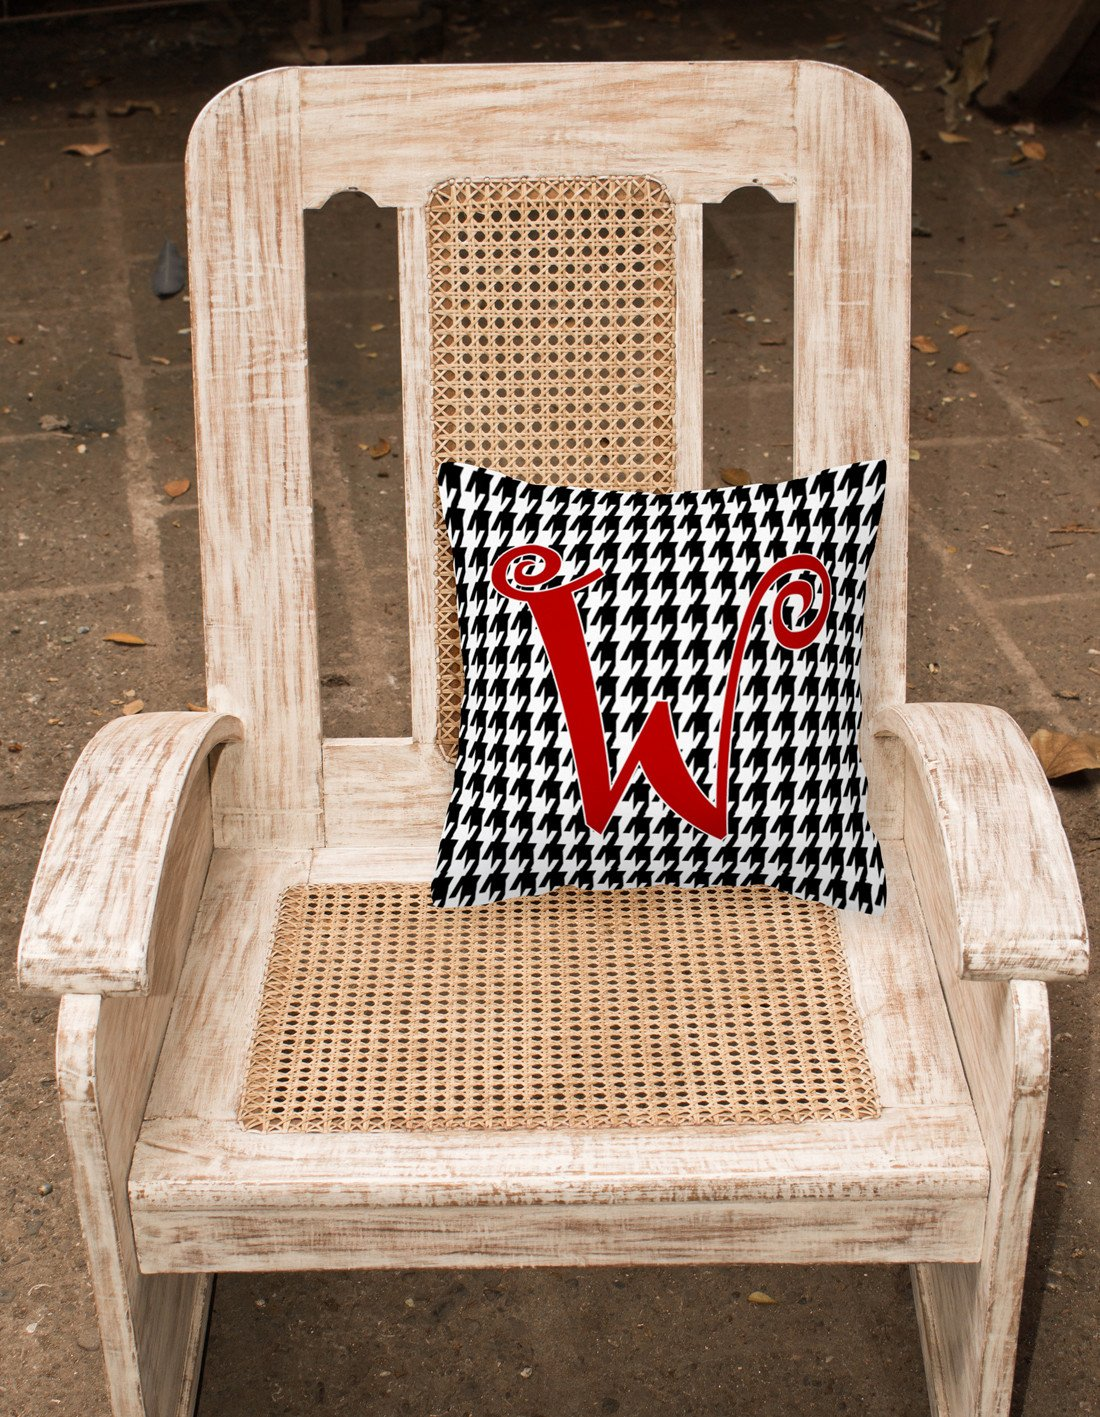 Monogram Initial W Houndstooth Black Decorative   Canvas Fabric Pillow CJ1035 by Caroline's Treasures